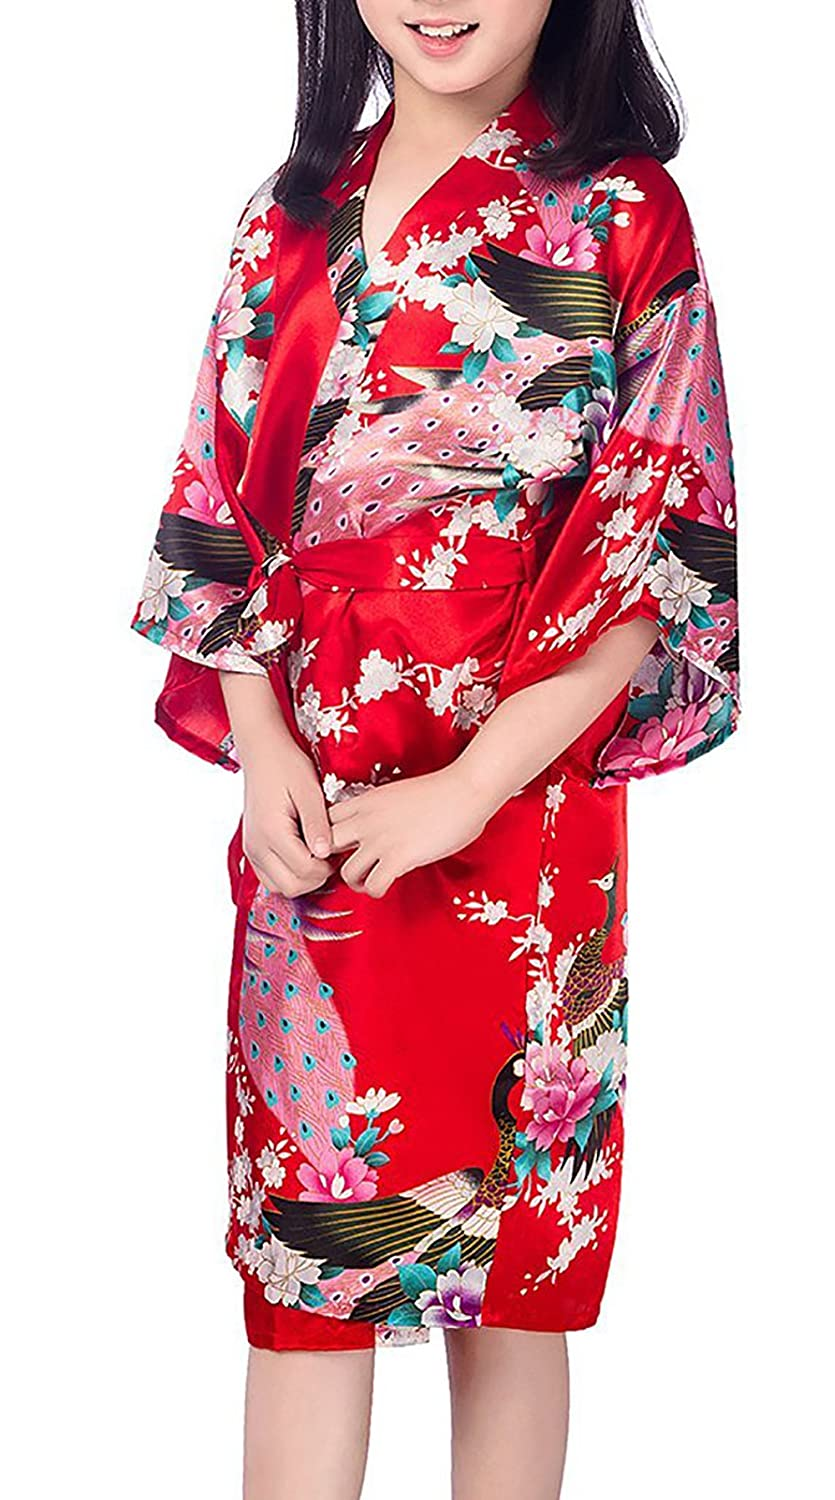 Admireme Girls' Peacock Satin Kimono Robe Bathrobe Nightgown